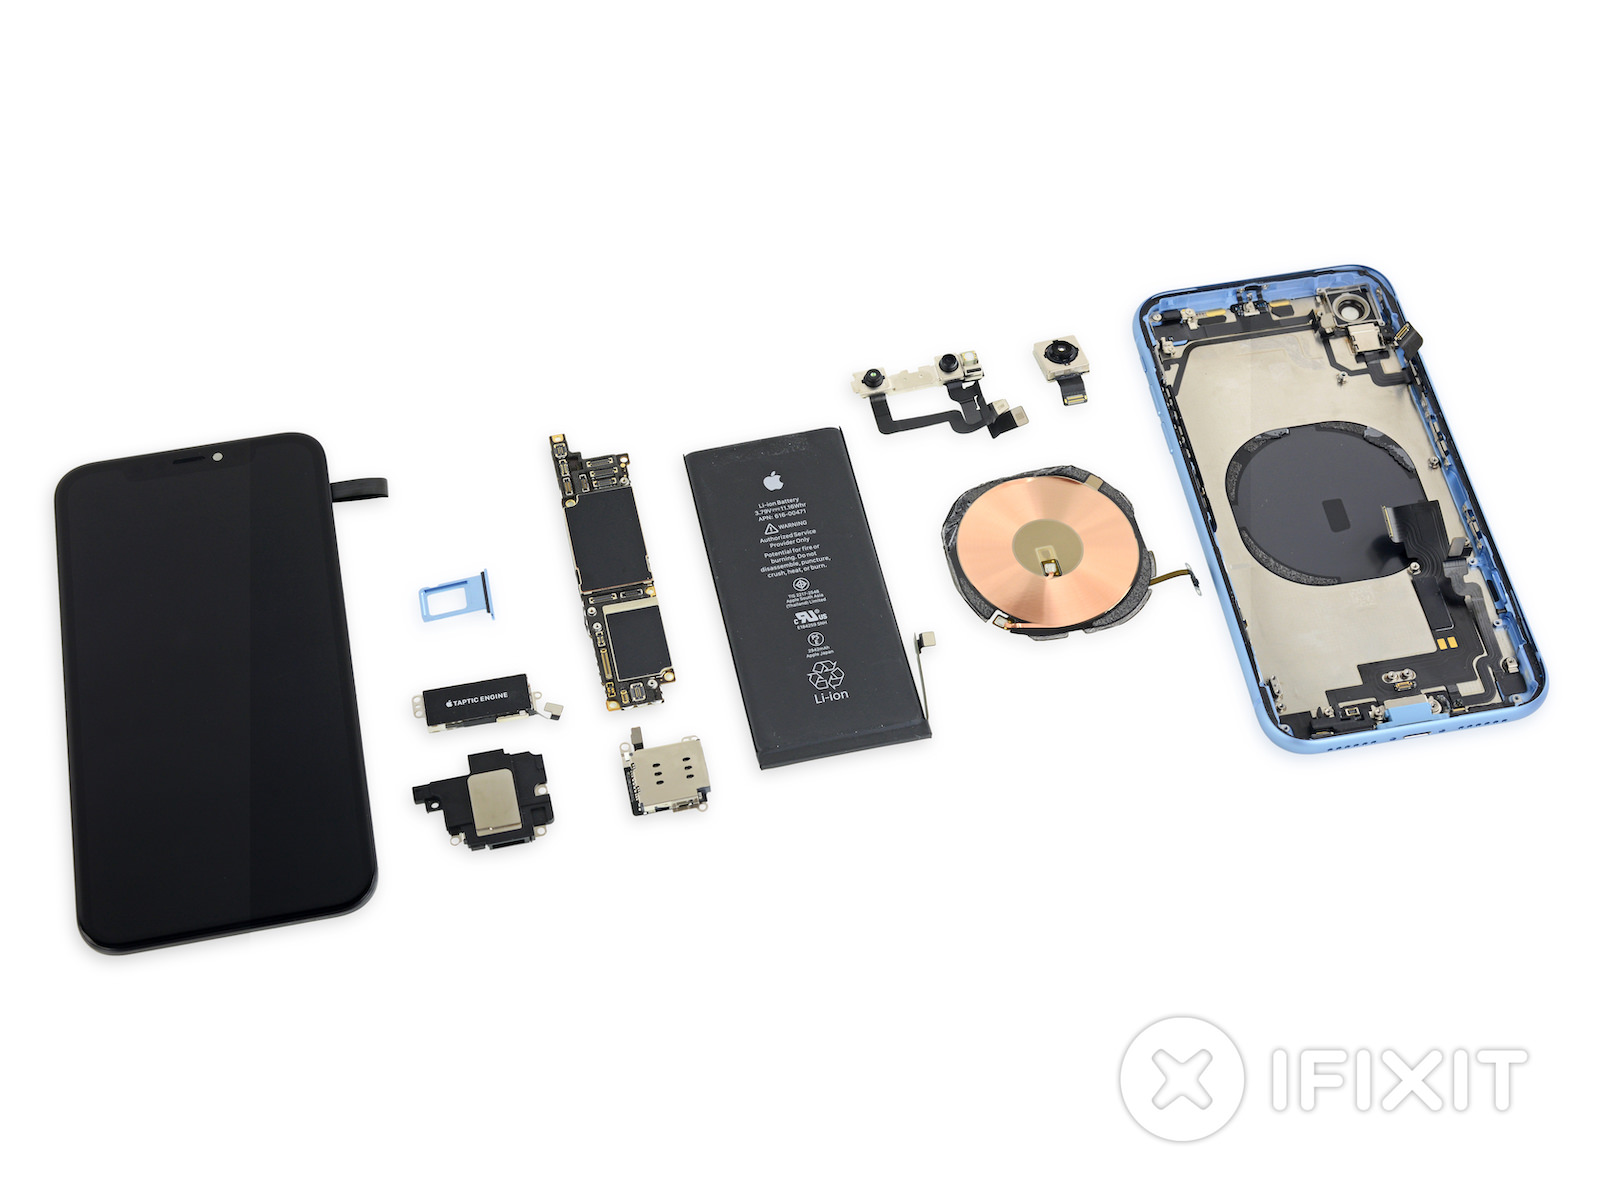 Ifixit iphonxr report